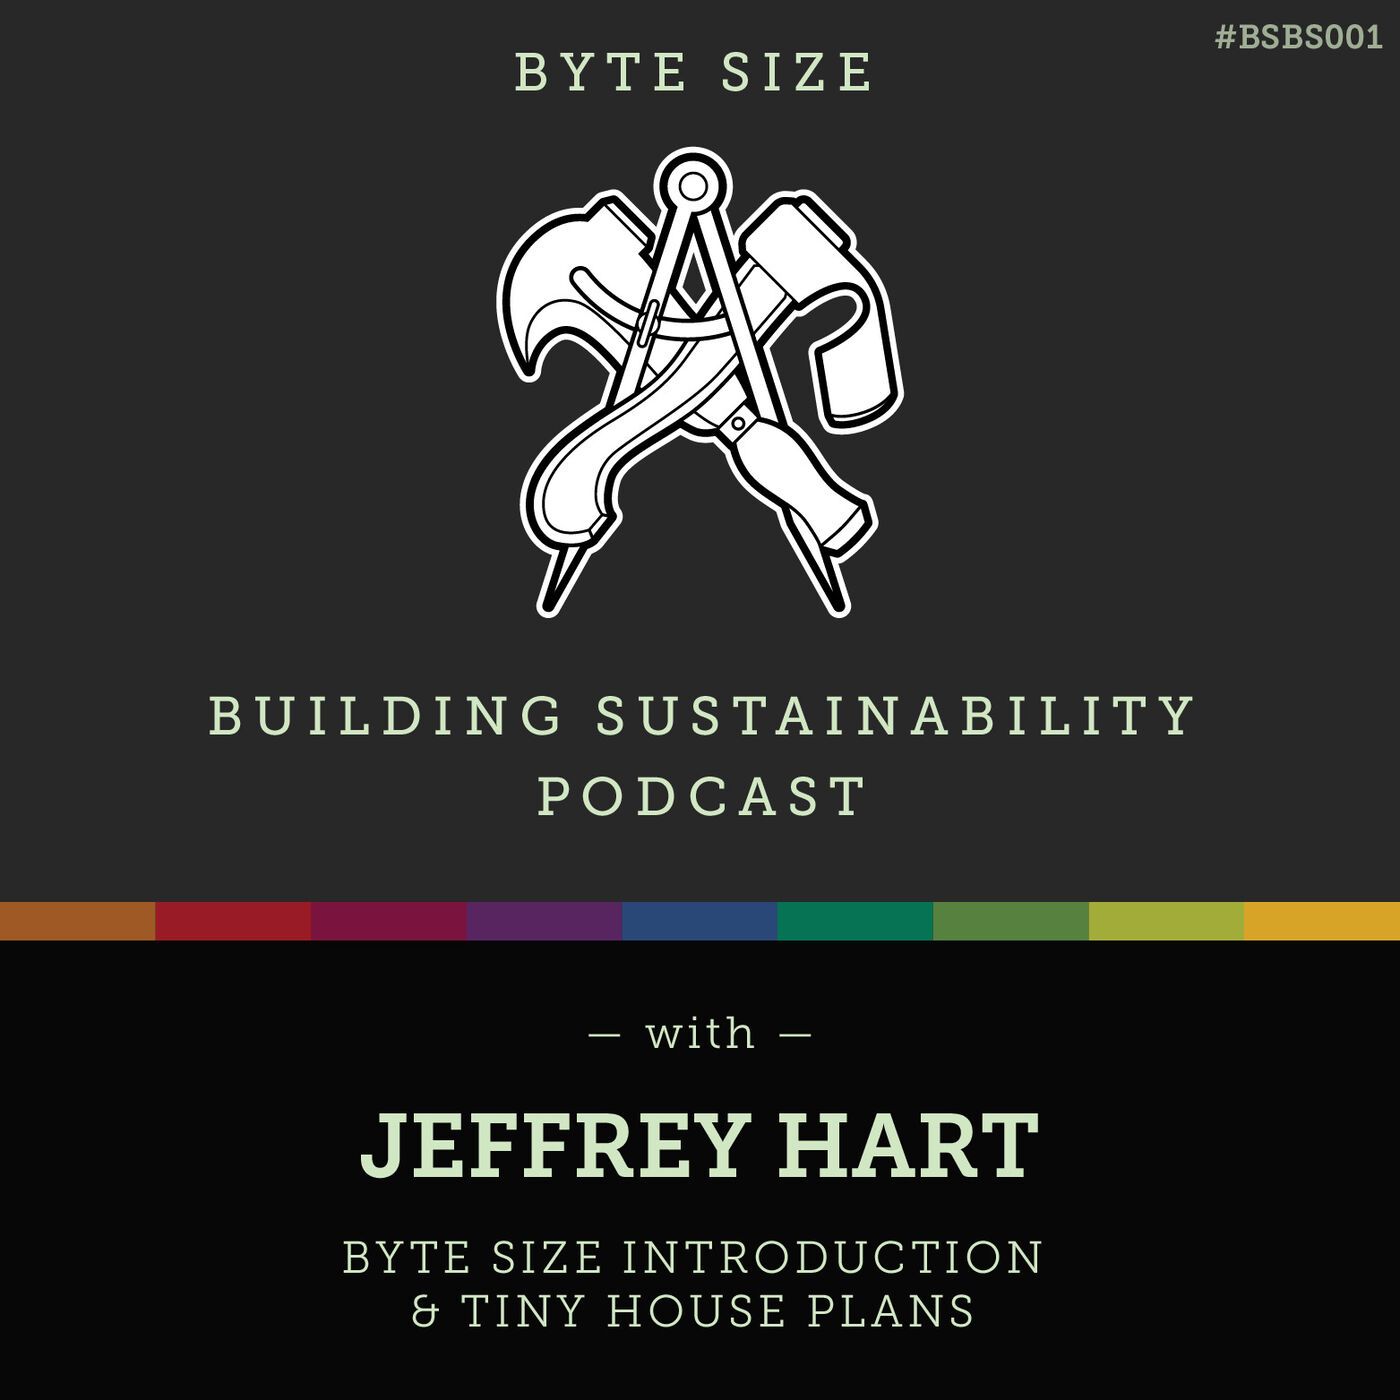 Byte Size Introduction & Tiny House Plans - Jeffrey Hart - BSBS001